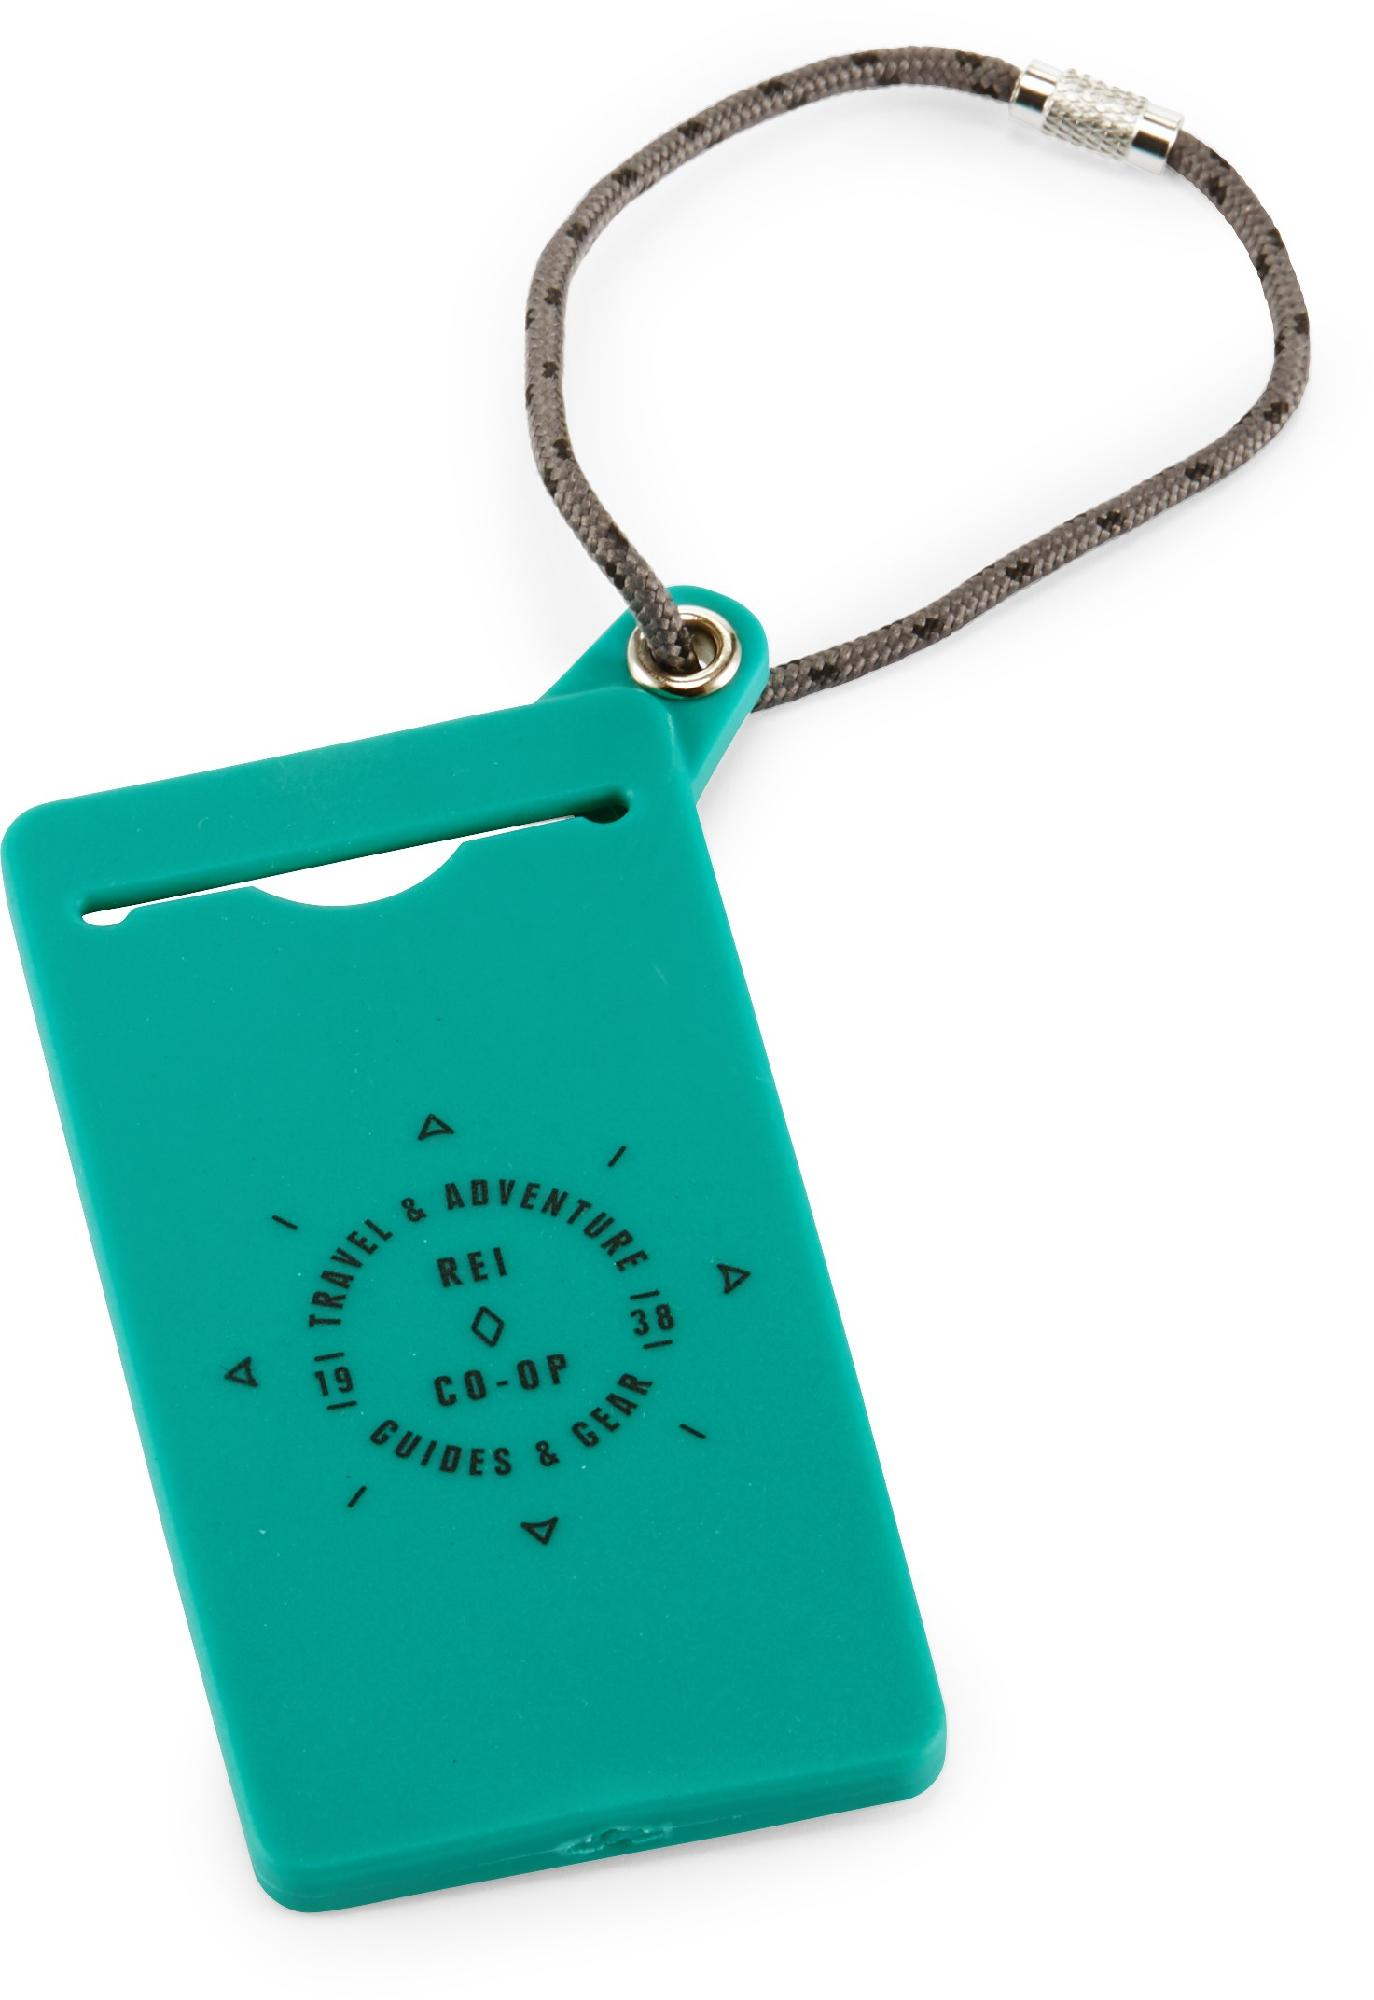 REI Co-op Small Luggage Tag